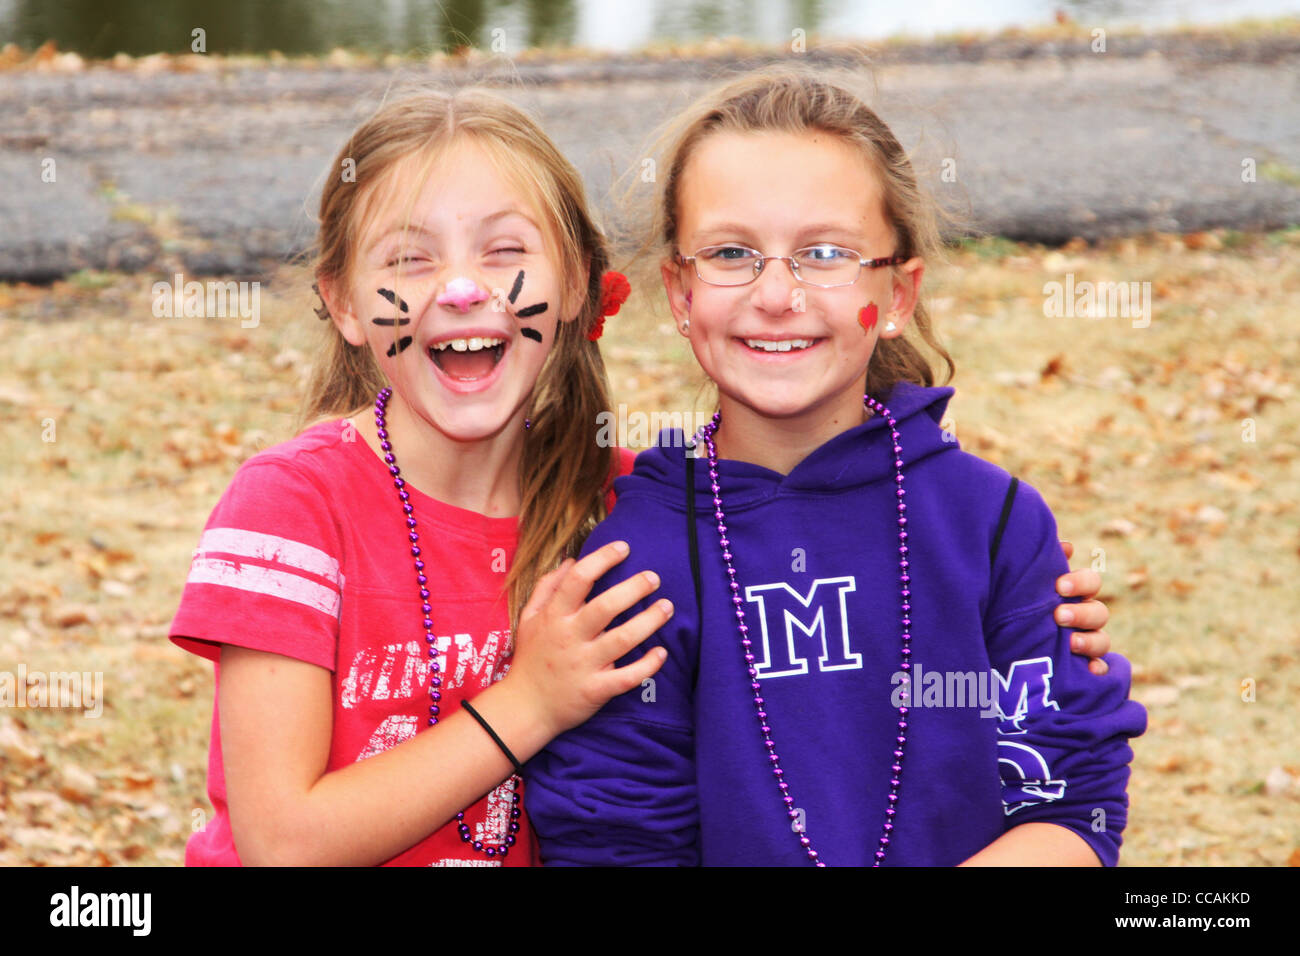 Smiling young girls with painted faces at Alzheimer's Memory Walk, Old River Park, Dayton, Ohio, USA. 26 September - Stock Image